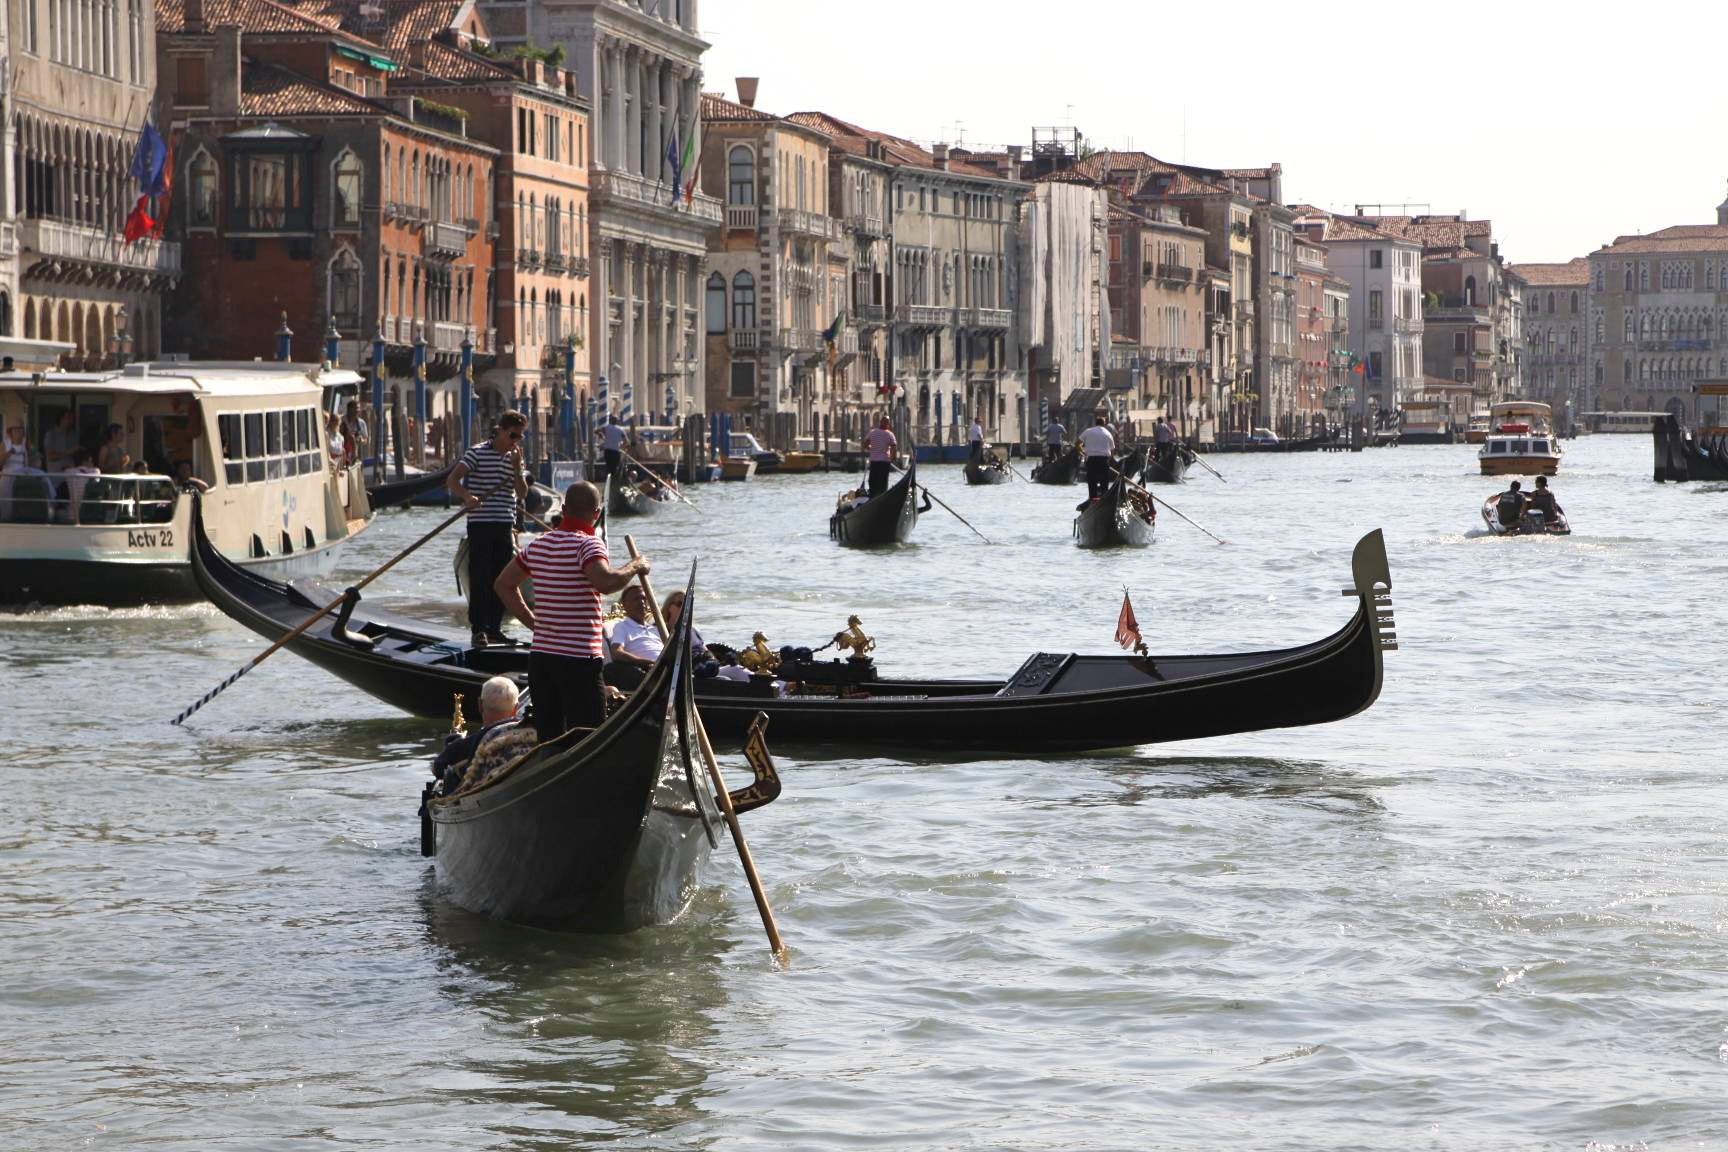 Photograph The Grand Canal, Venice, Italy by Jim Ranes on 500px